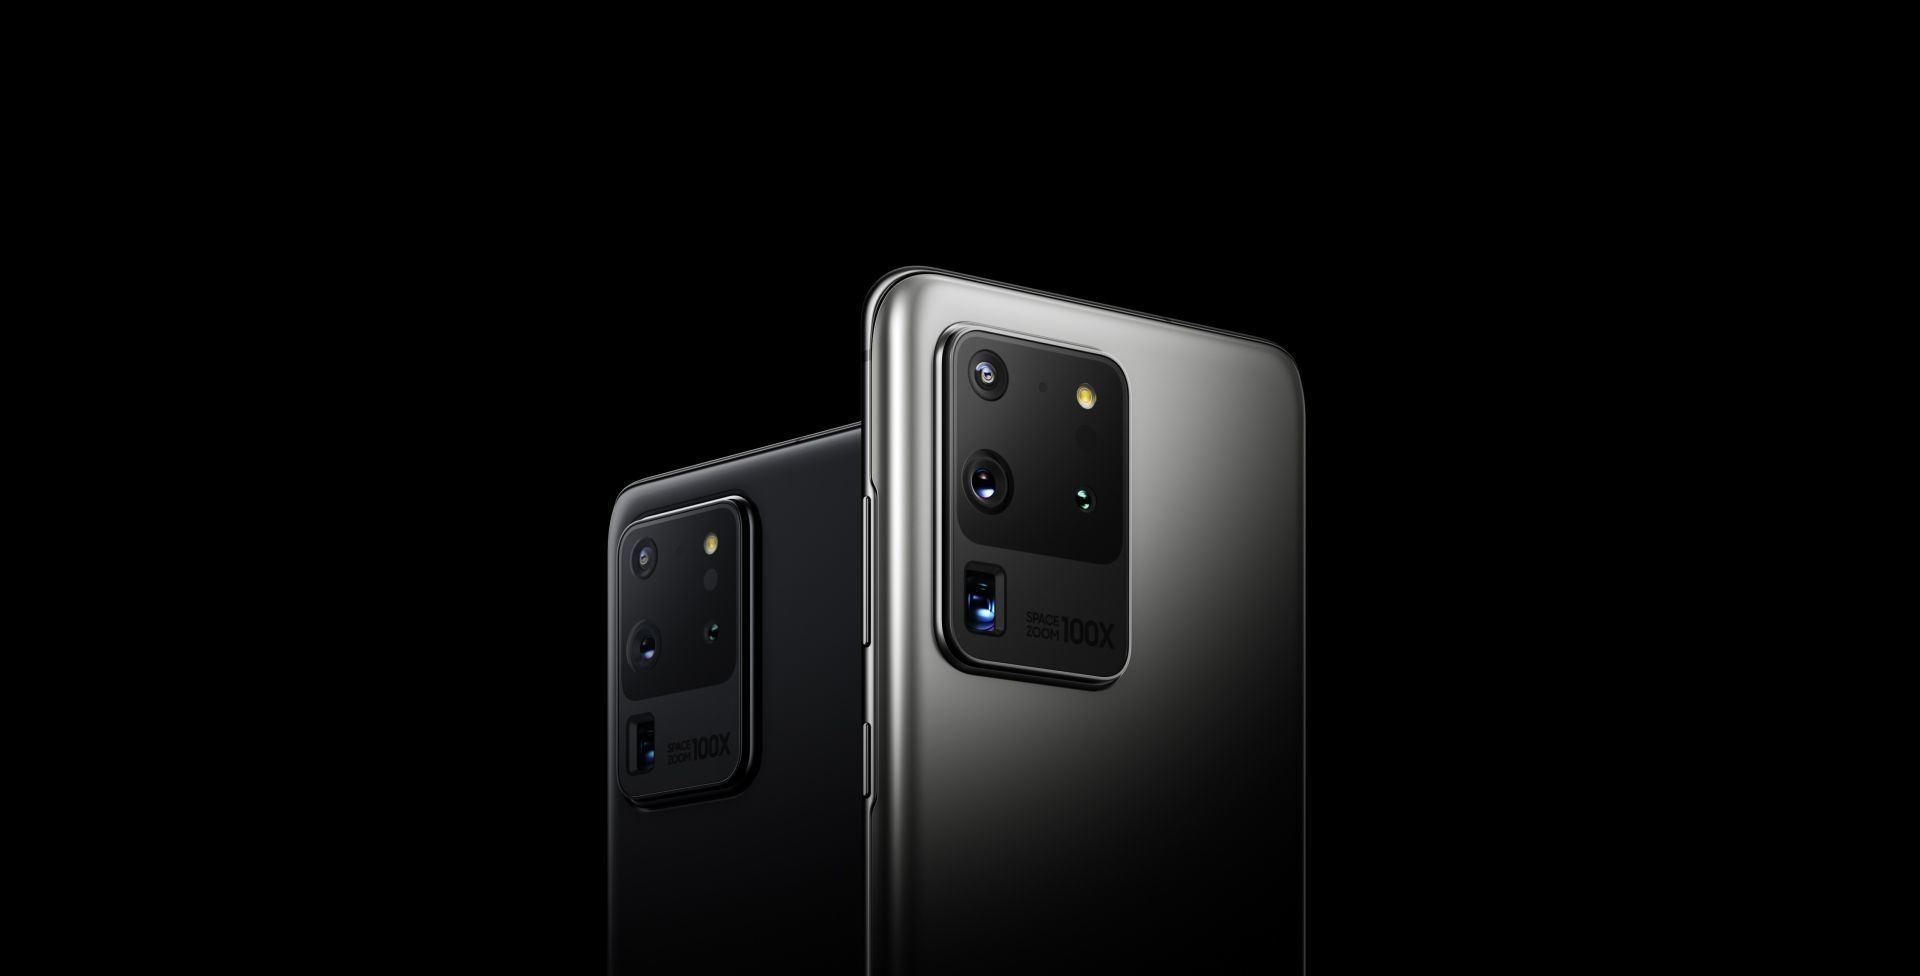 Two Galaxy S20 Ultra phones, one in Cosmic Black and one in Cosmic Gray, seen from the rear at three-quarter angles. They turn towards each other and one disappears behind the other, so one is seen from the rear straight on. White sweeps in until all that can be seen is the rear quad camera